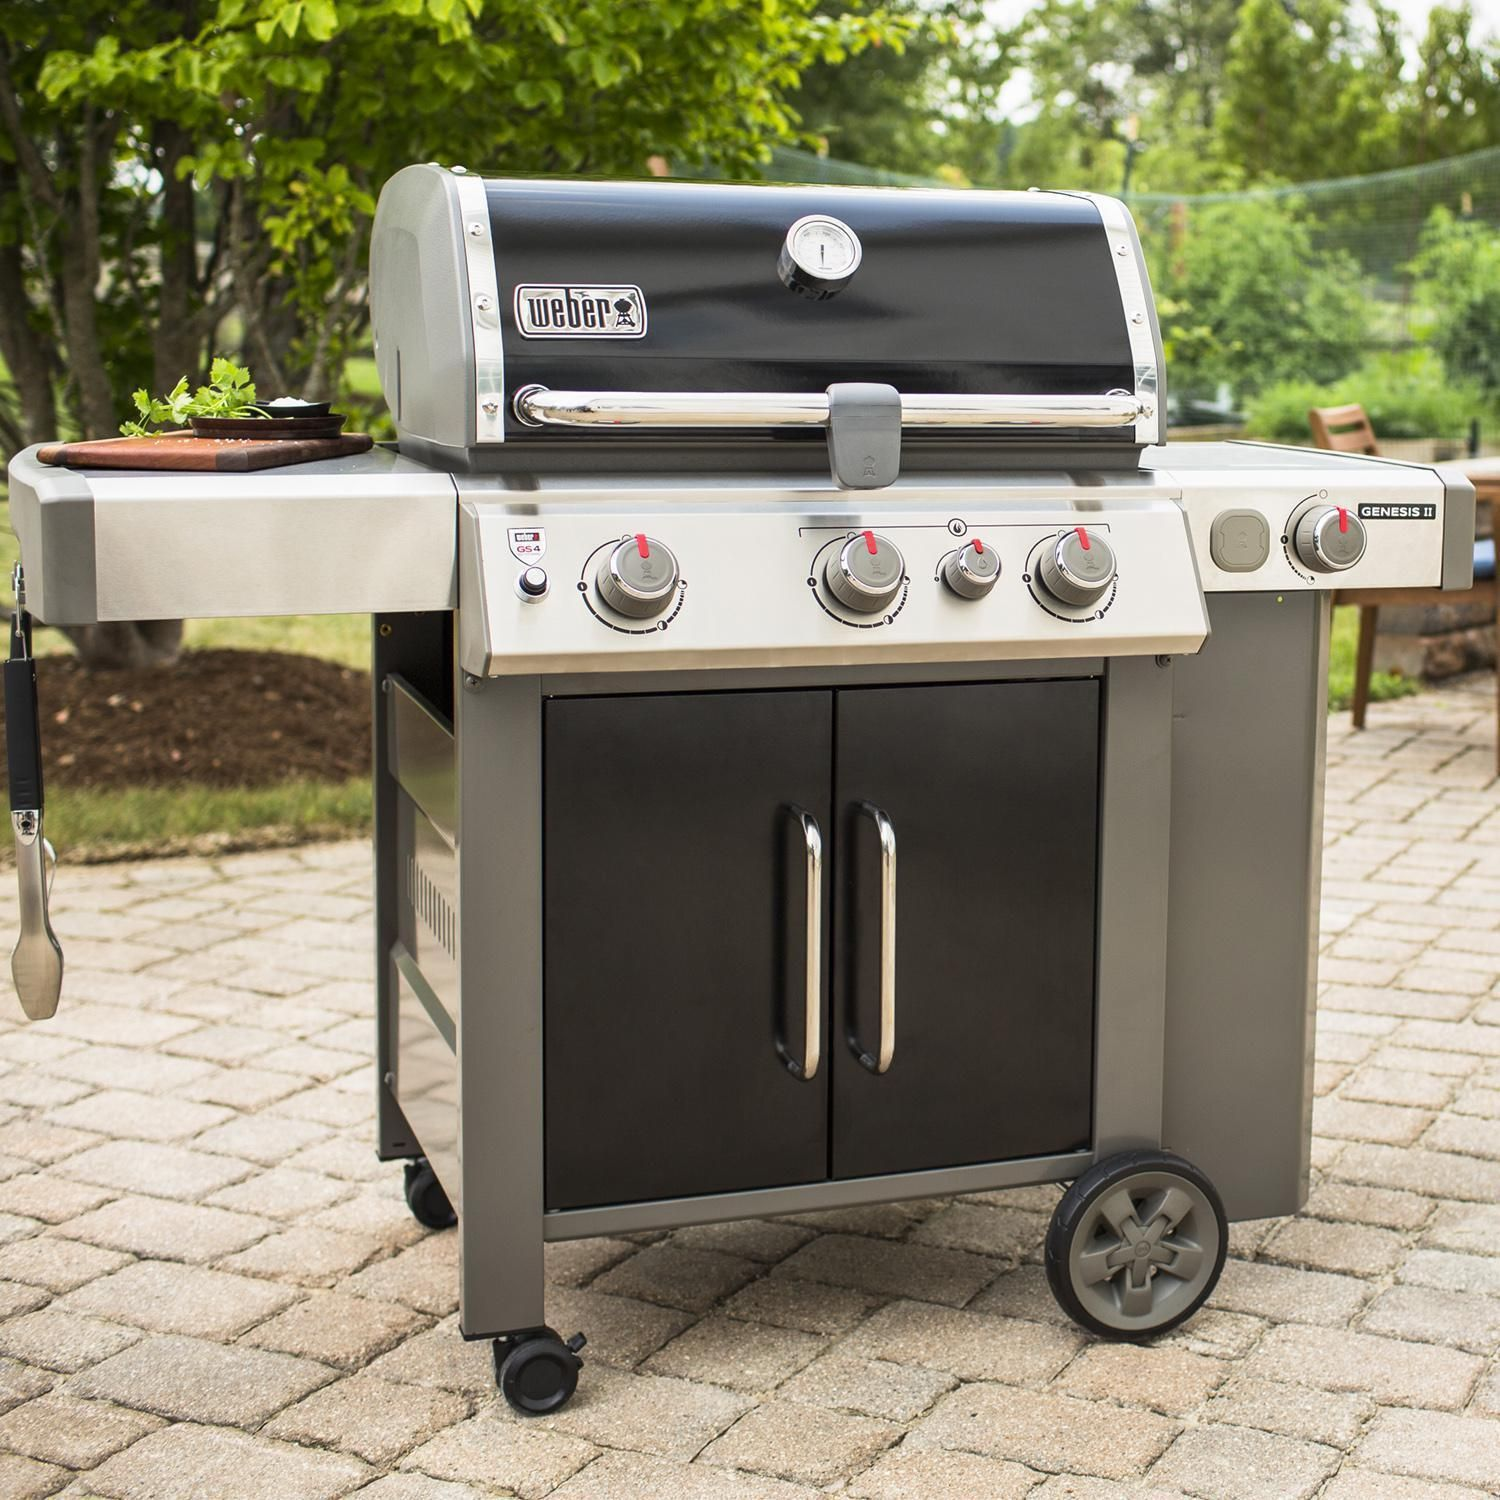 The 2019 Weber Genesis Ii Gas Grill Raises The Standard In Backyard Grilling With The Gs4 High Performance Grilling S In 2020 Propane Gas Grill Gas Grill Propane Grill